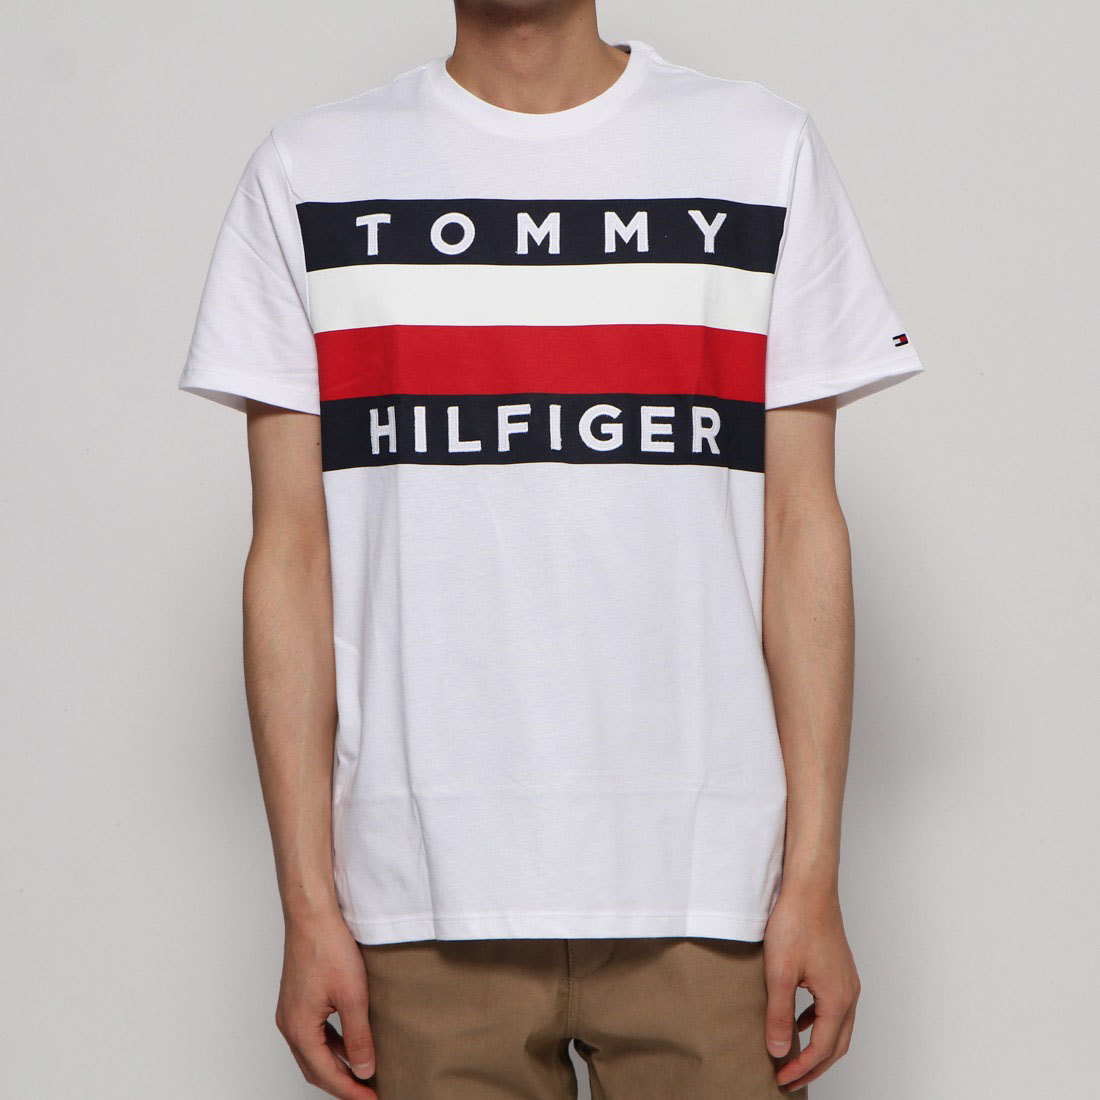 Tommy Hilfiger Shirt Mens Crew Neck Tee Cotton Stretch T-shirt Flag Logo New Nwt